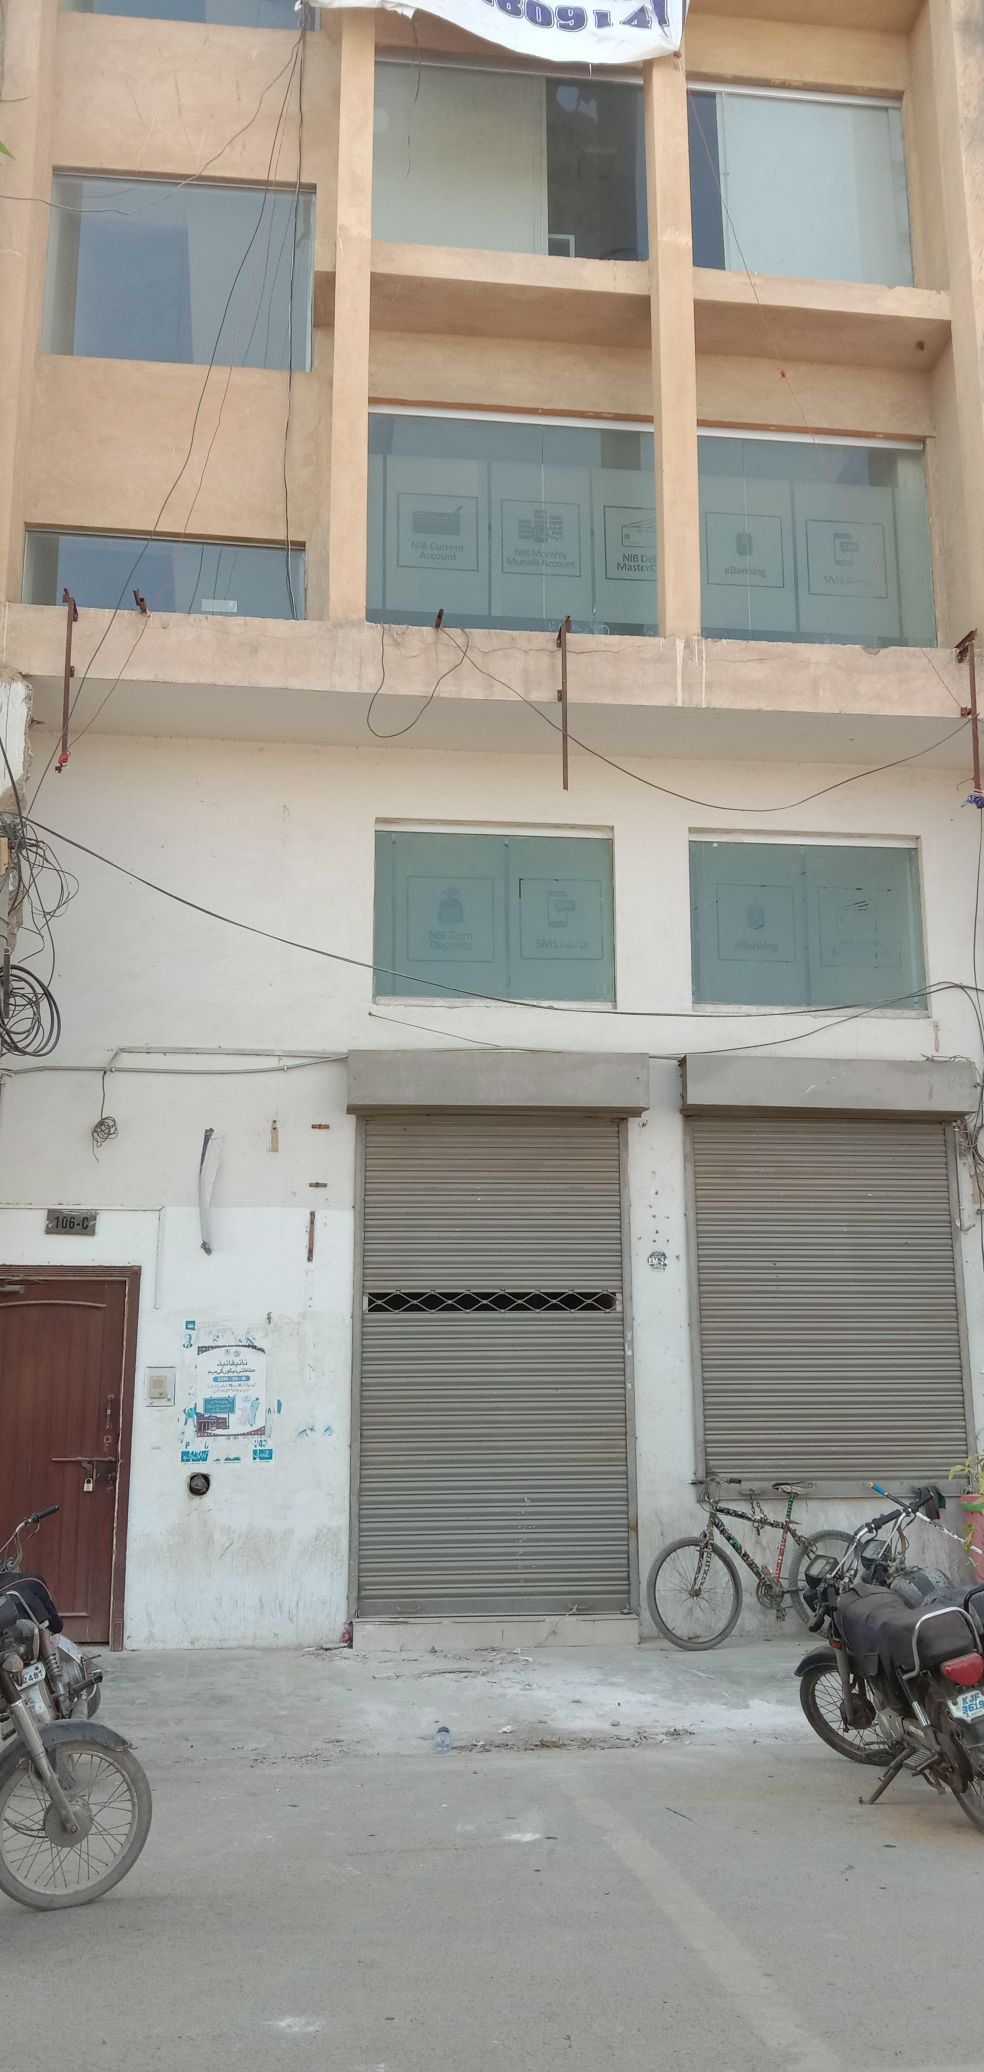 Building Available For Rent